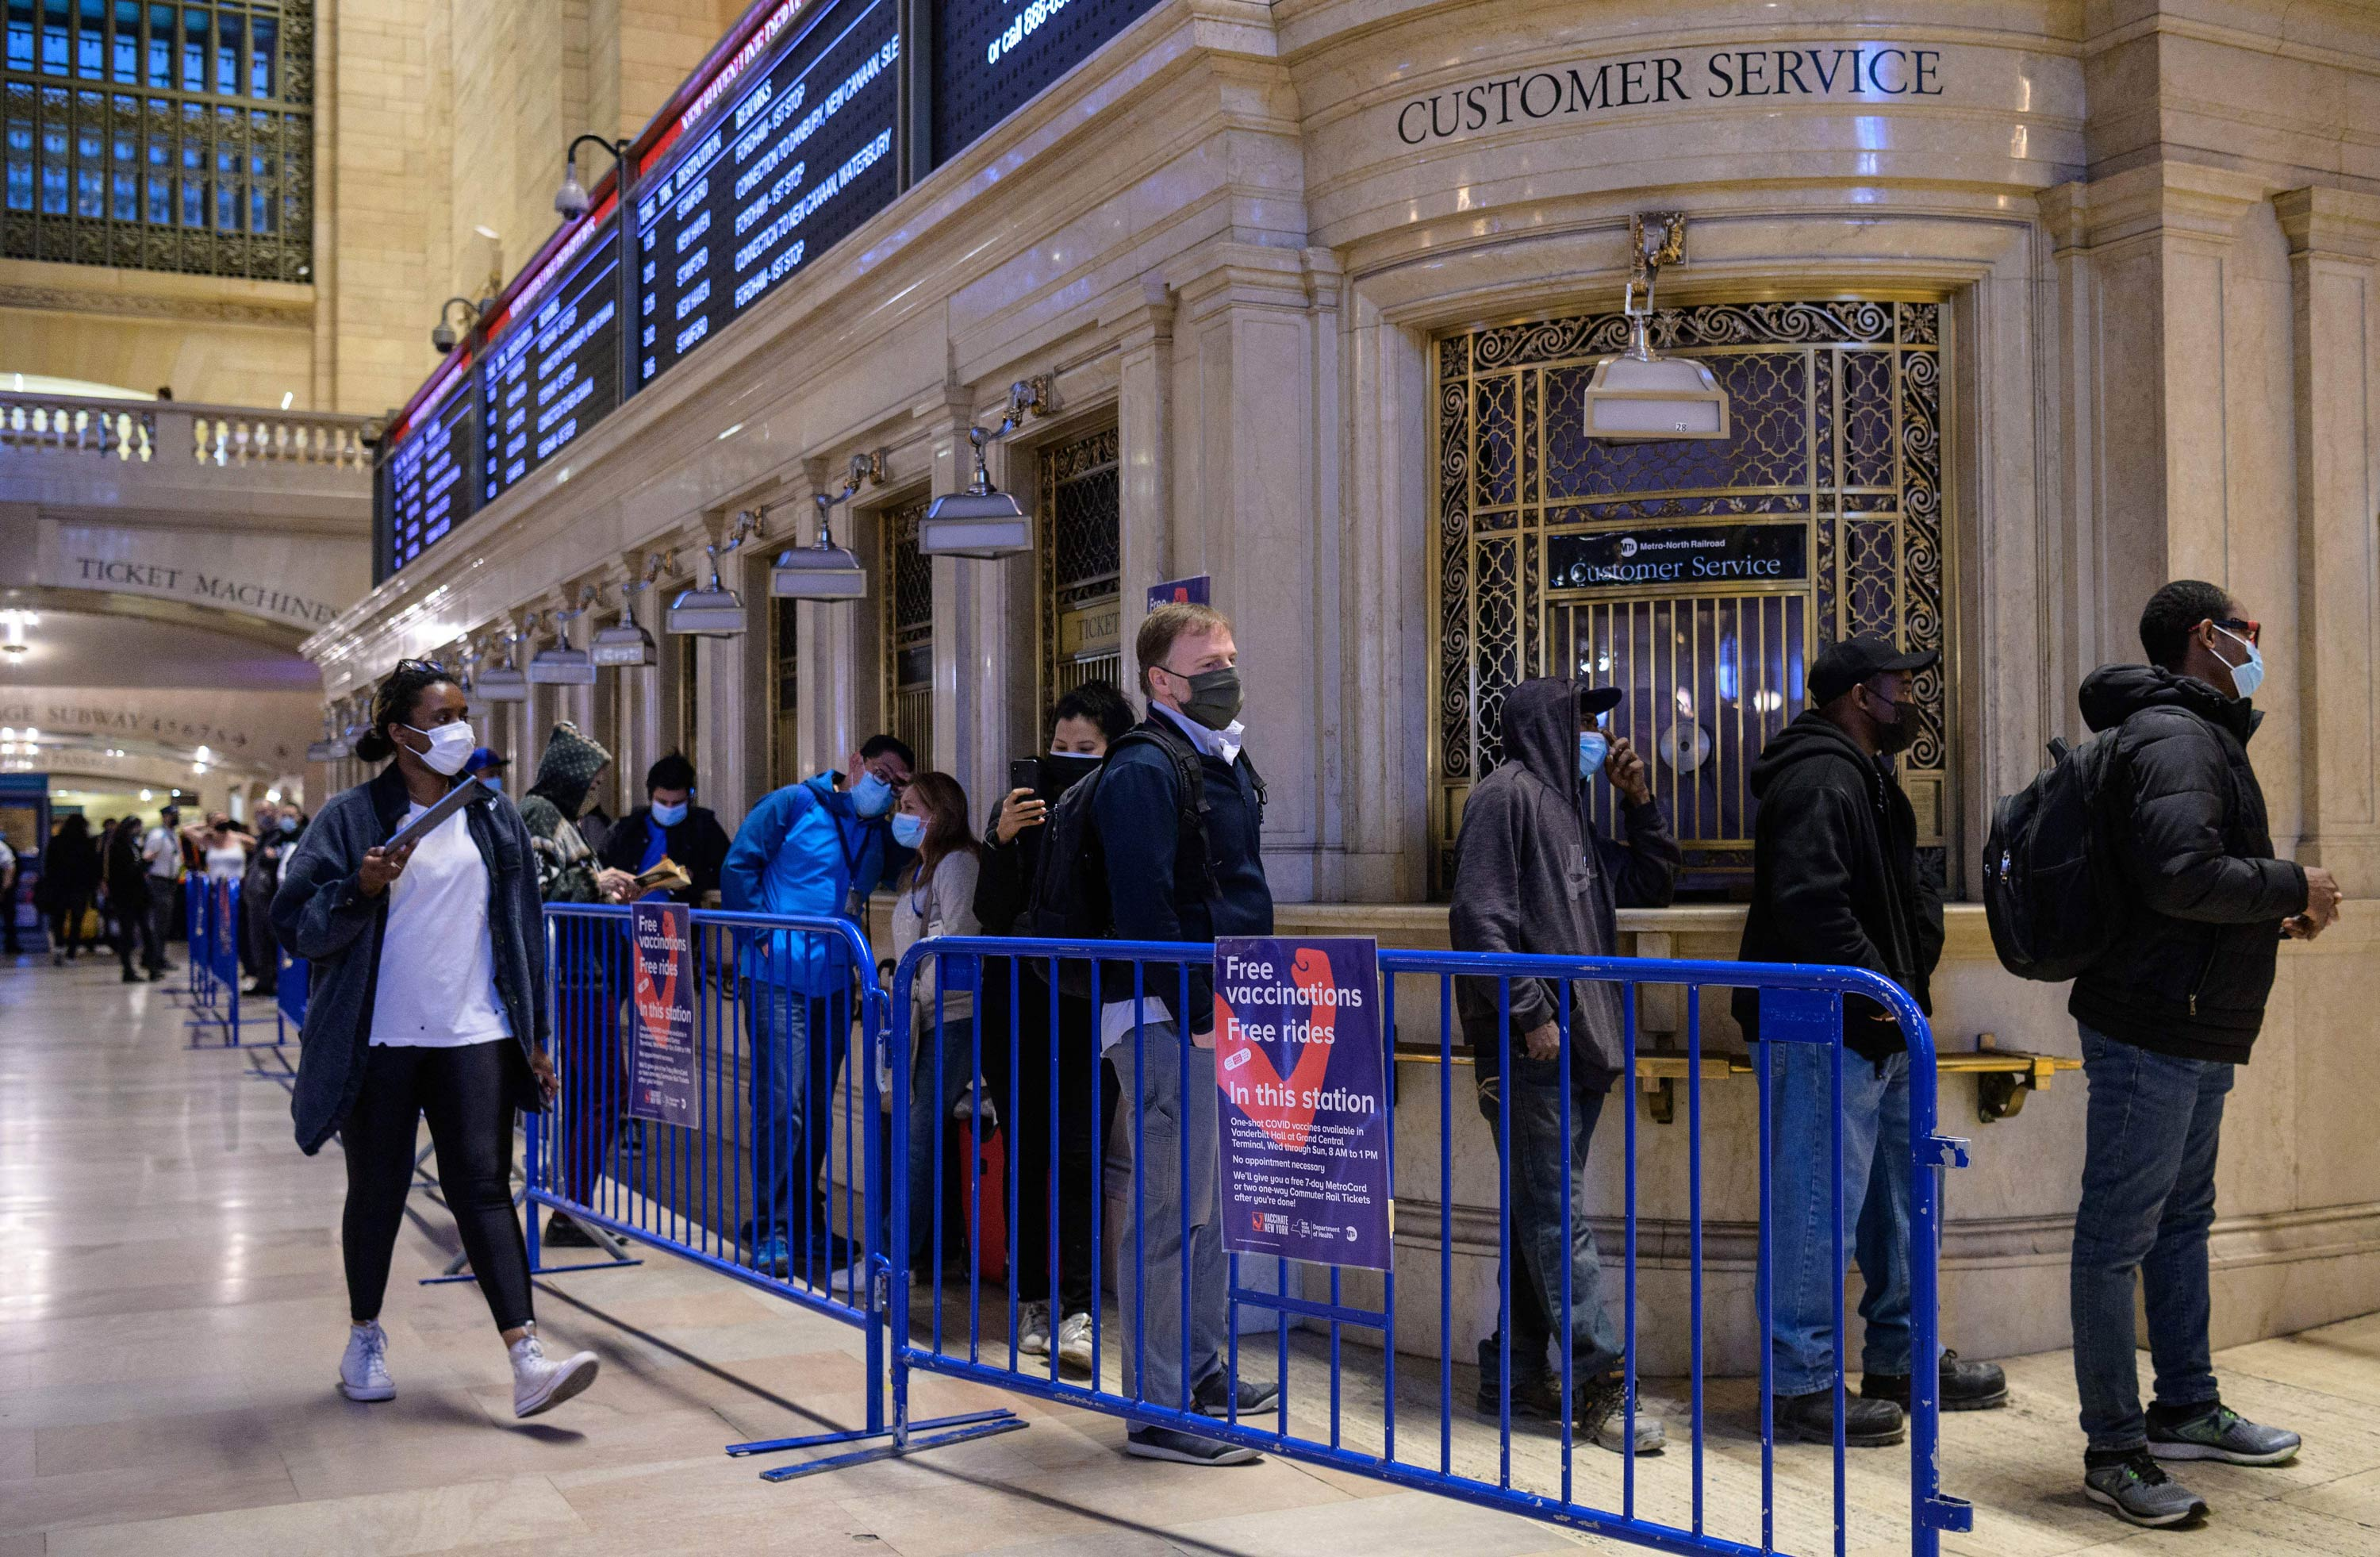 People stand in line to receive the Covid-19 vaccine at a temporary vaccination site at Grand Central Terminal train station on May 12 in New York City.